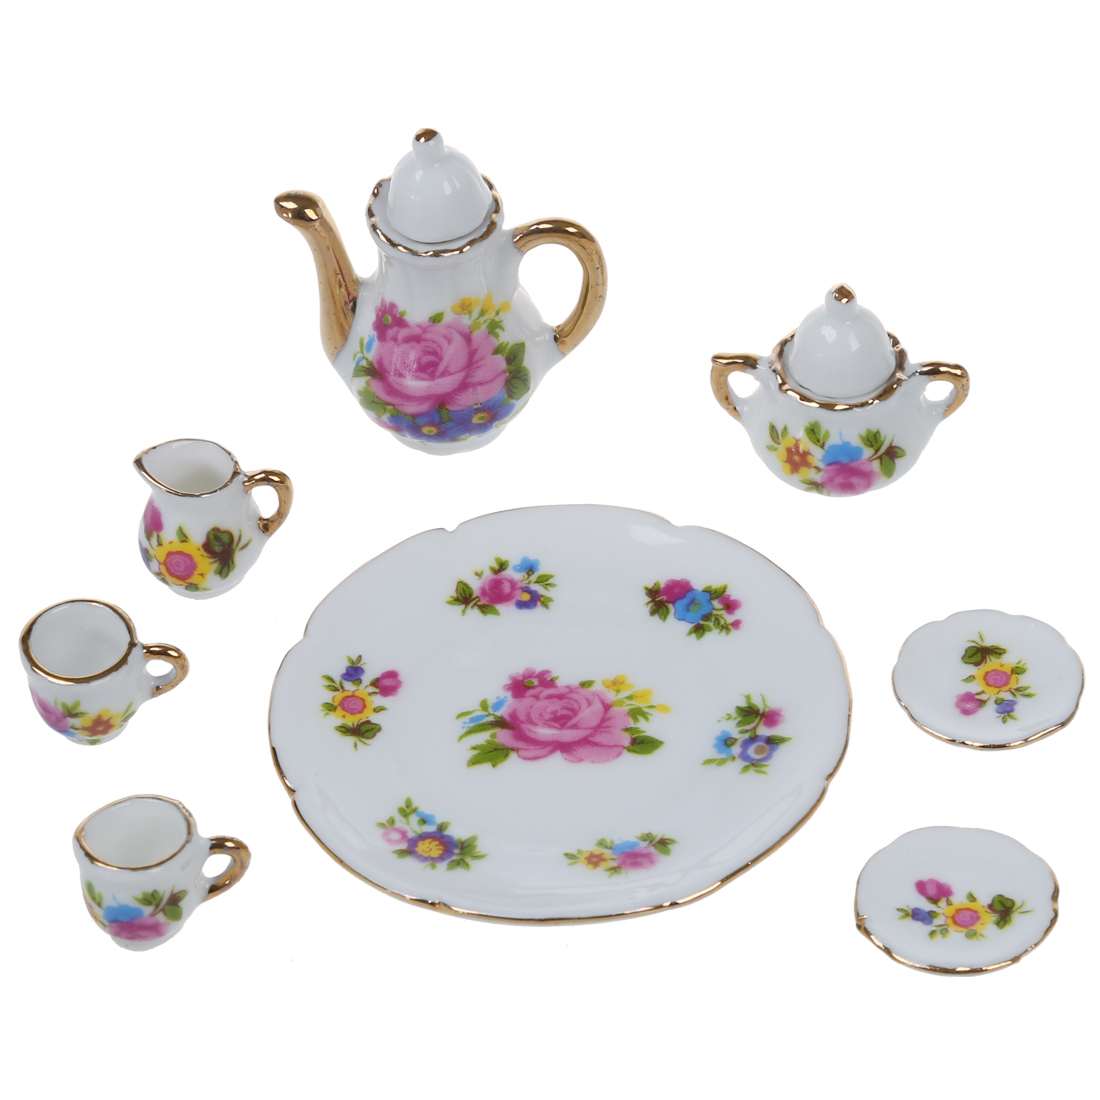 A tea set. What is included in the set for the tea ceremony 1